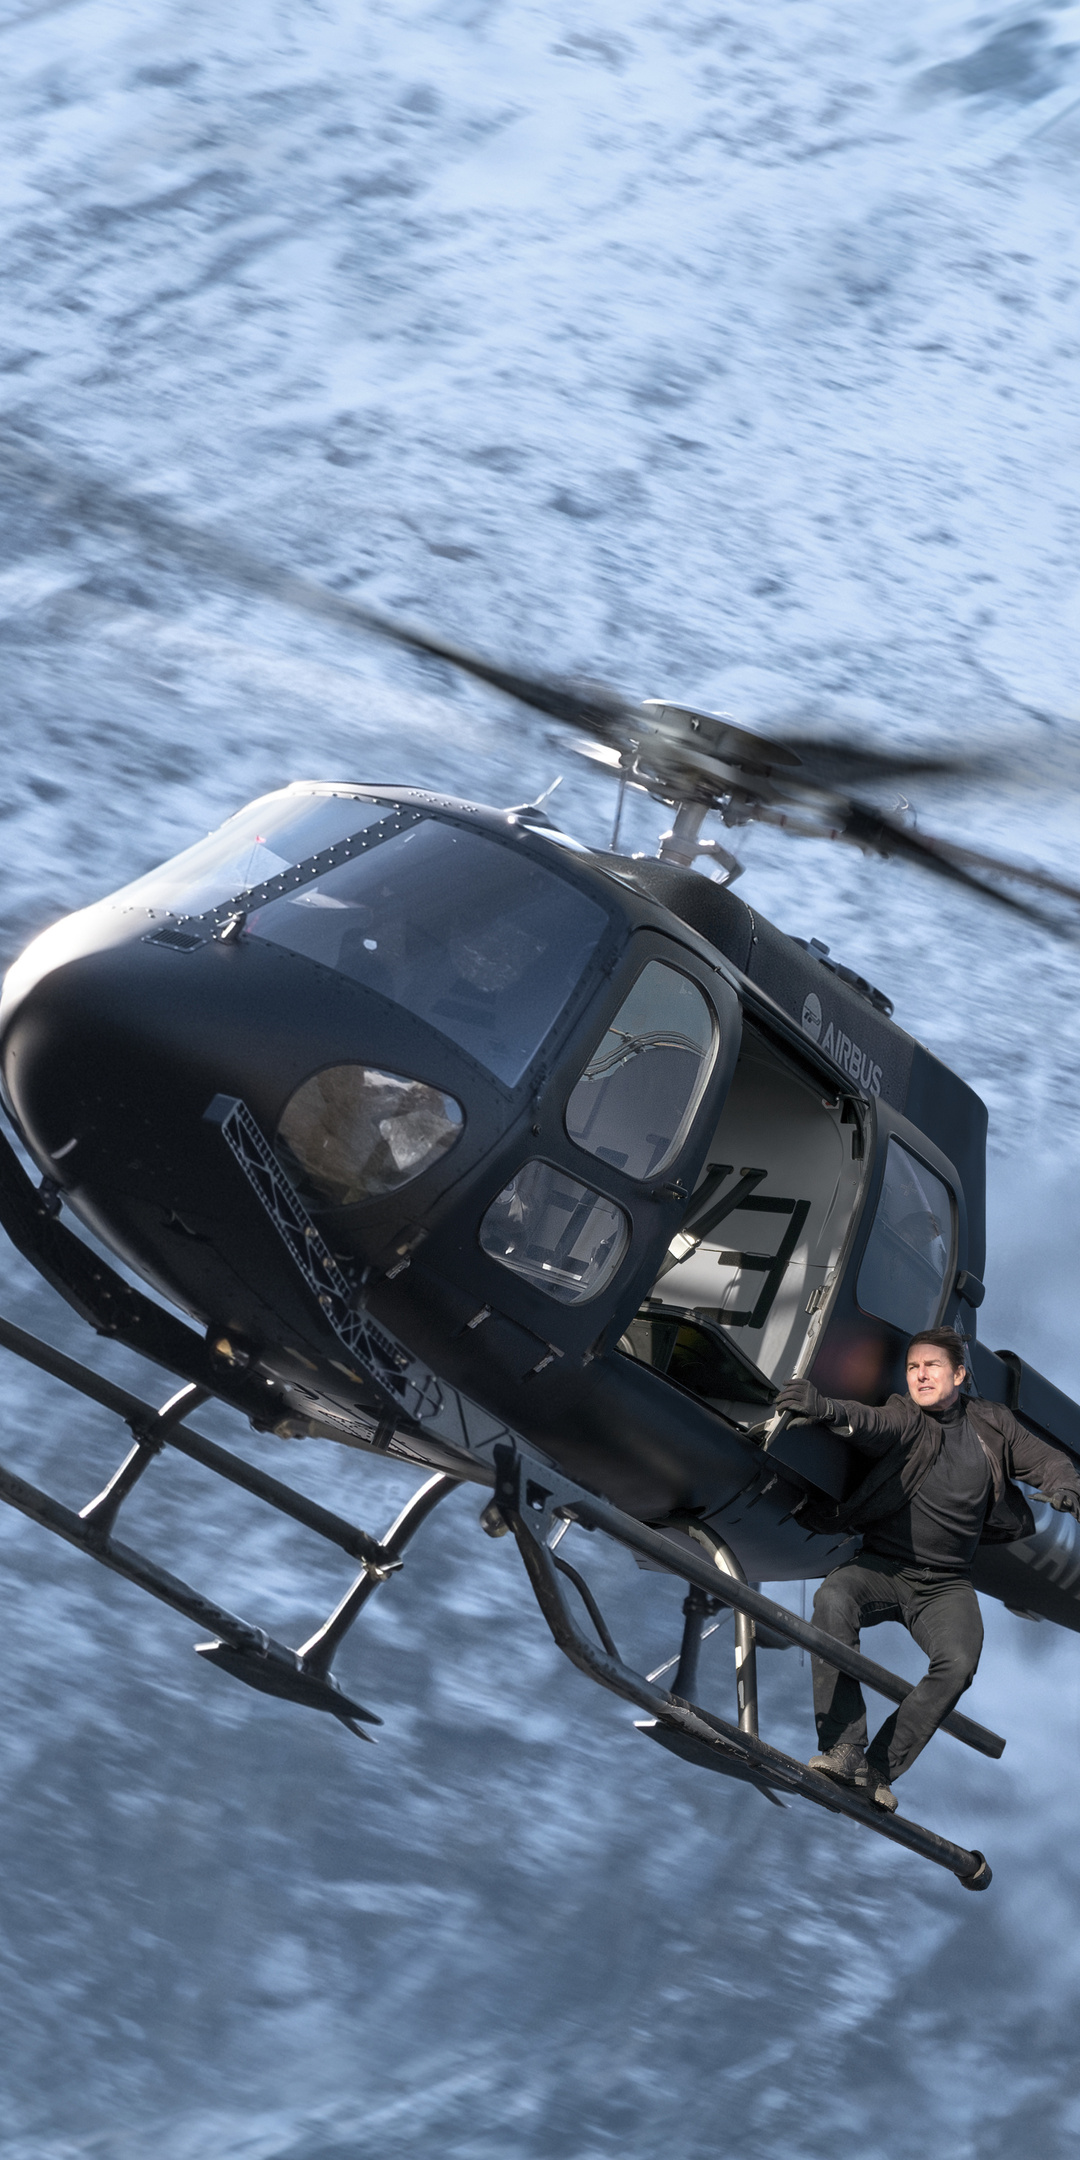 mission-impossible-fallout-2018-8k-ui.jpg